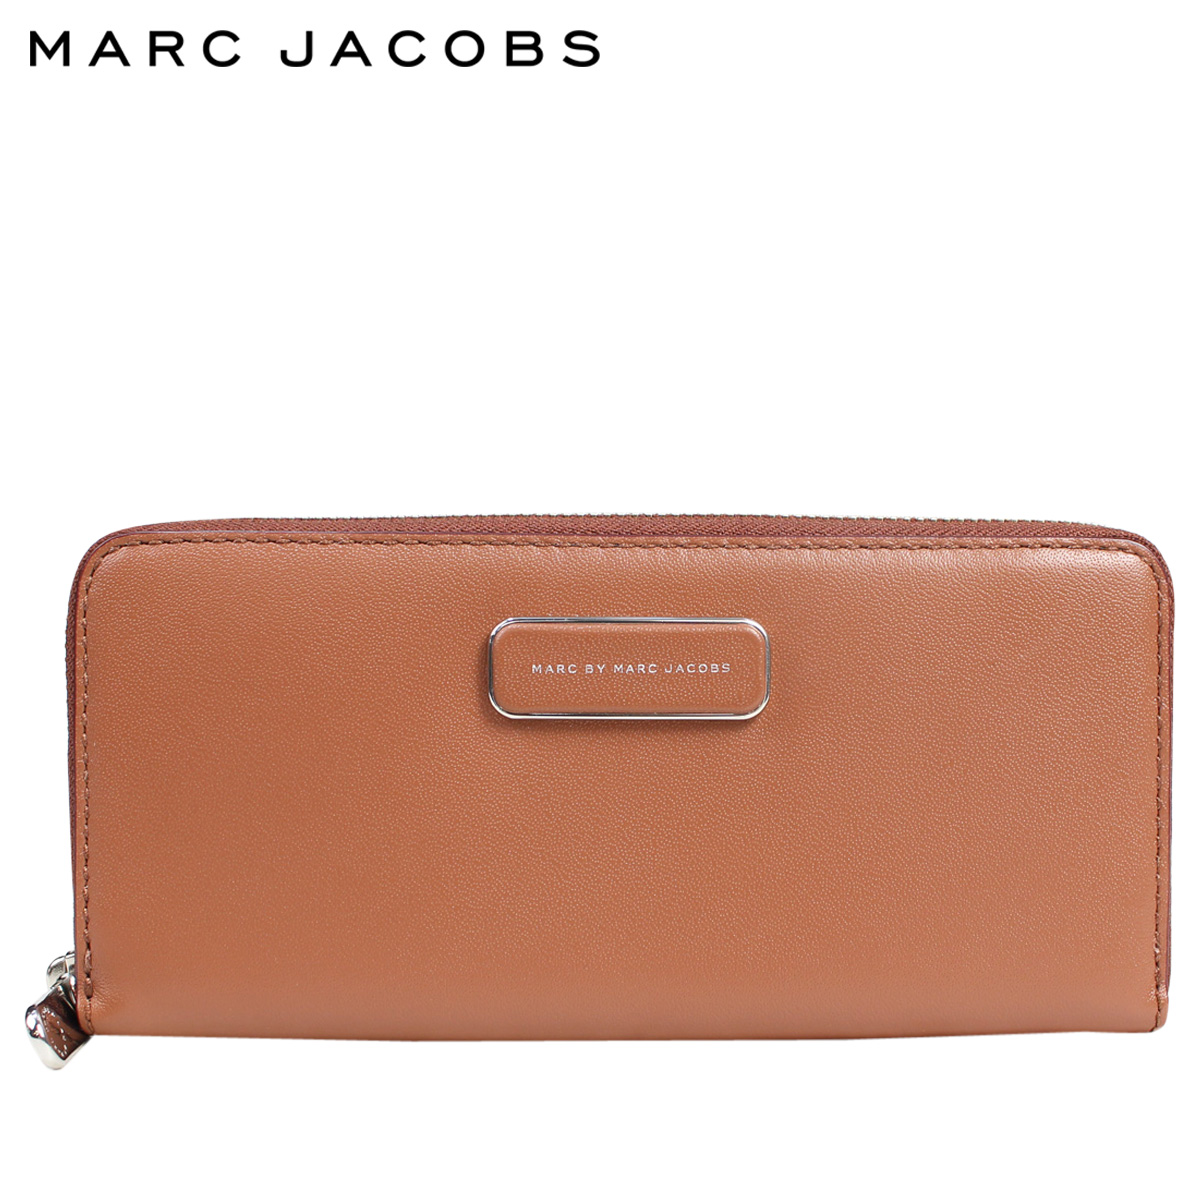 f2a8da567ec2 Mark by mark Jacobs MARC BY MARC JACOBS wallet long wallet round fastener  Lady s SLIM ZIP AROUND M0006934 brown